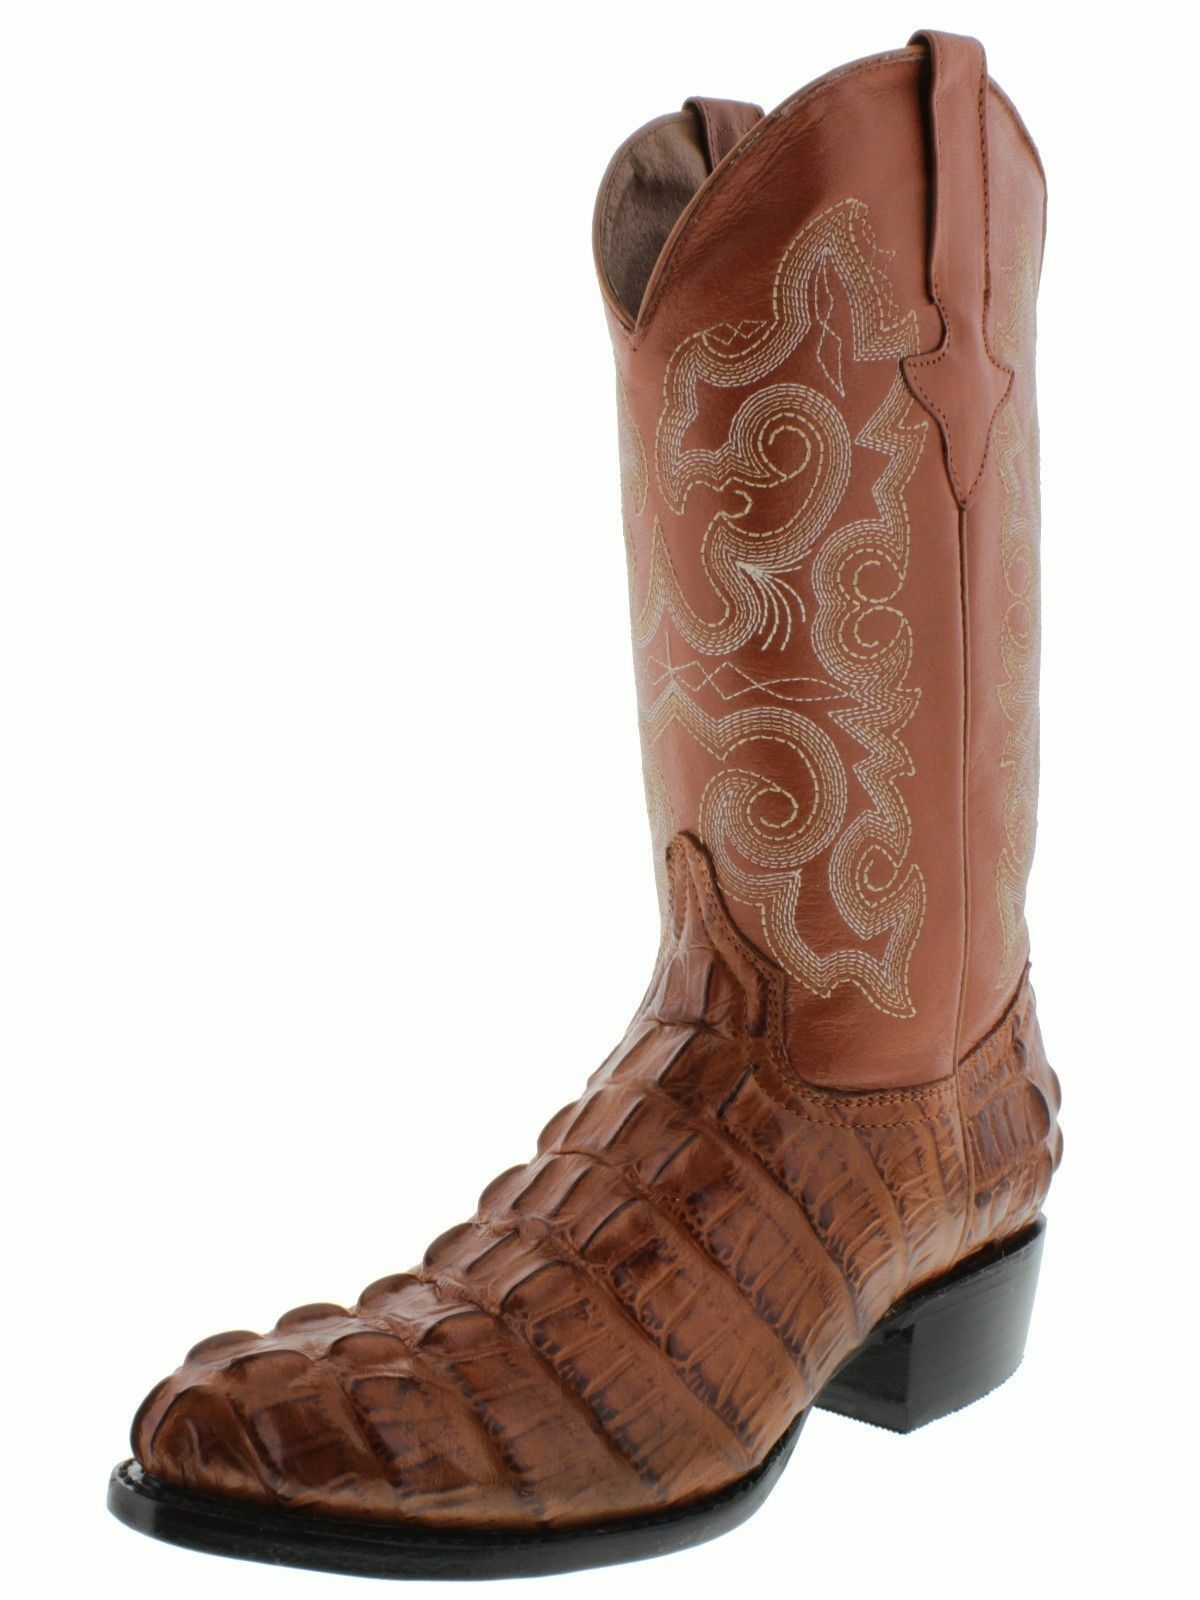 Men's New Leather Crocodile Tail Design Western Cowboy Rounded Boots Cognac